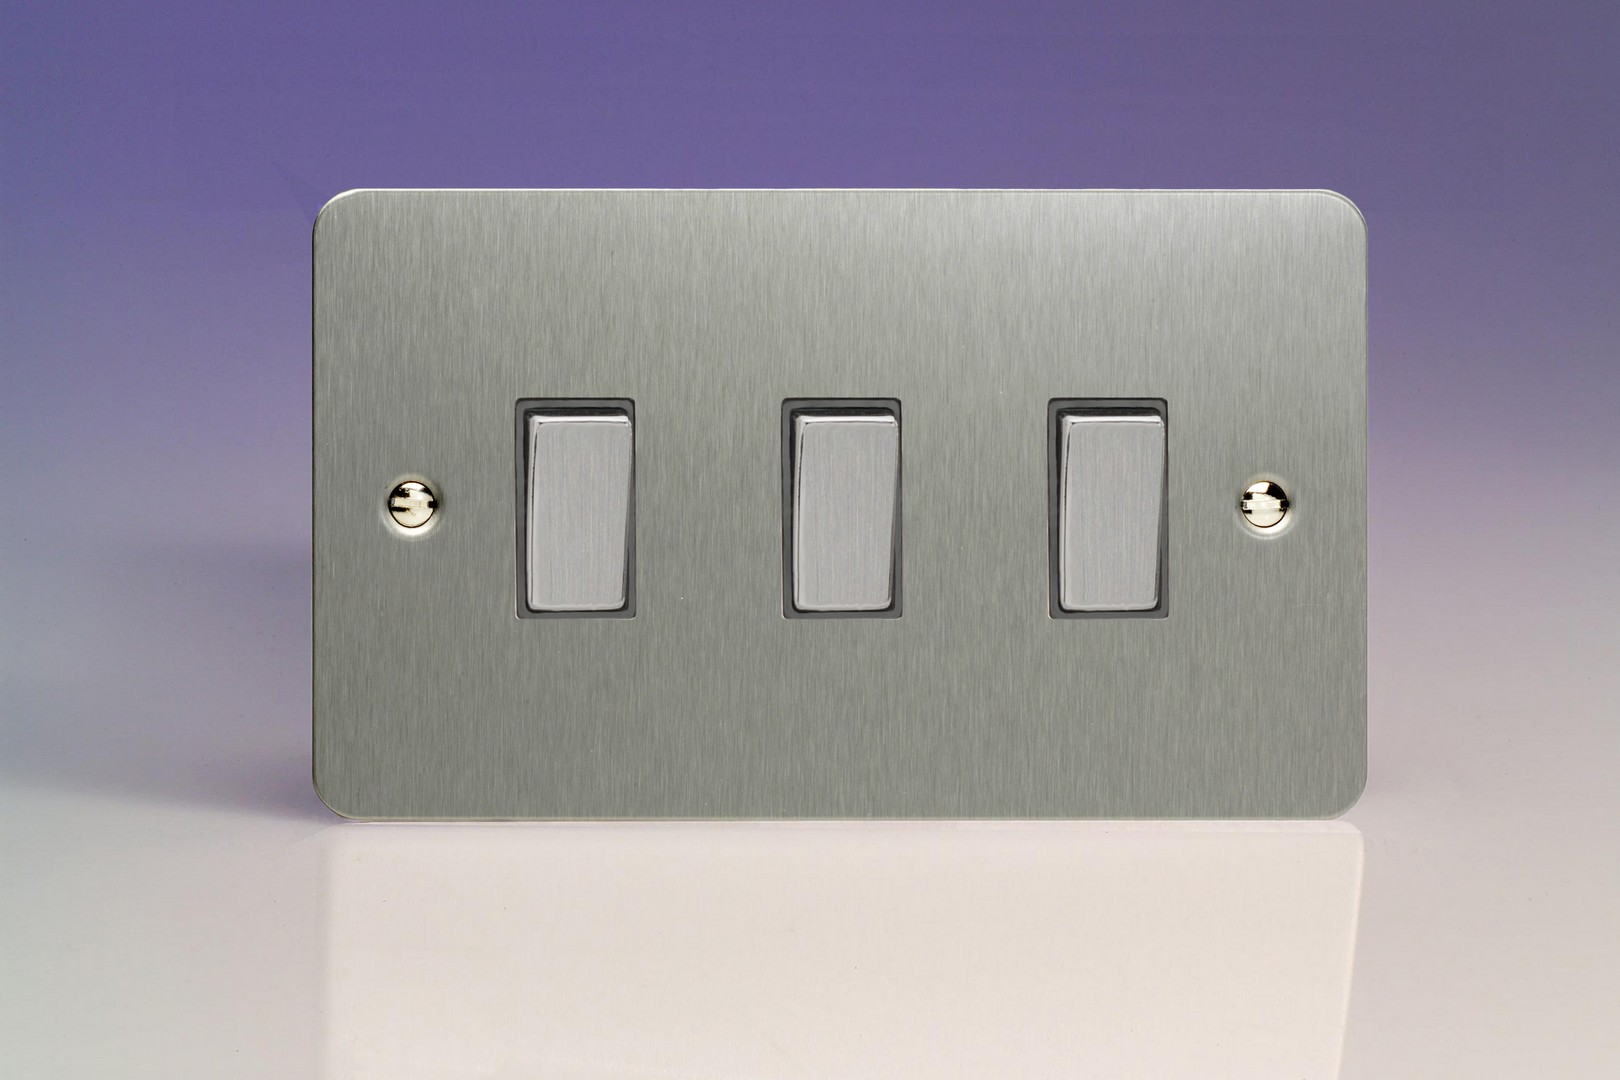 XFS93D Varilight 3 Gang (Triple), 1or 2 Way 10 Amp Switch, Ultra Flat Flat Brushed Steel (Double Plate)